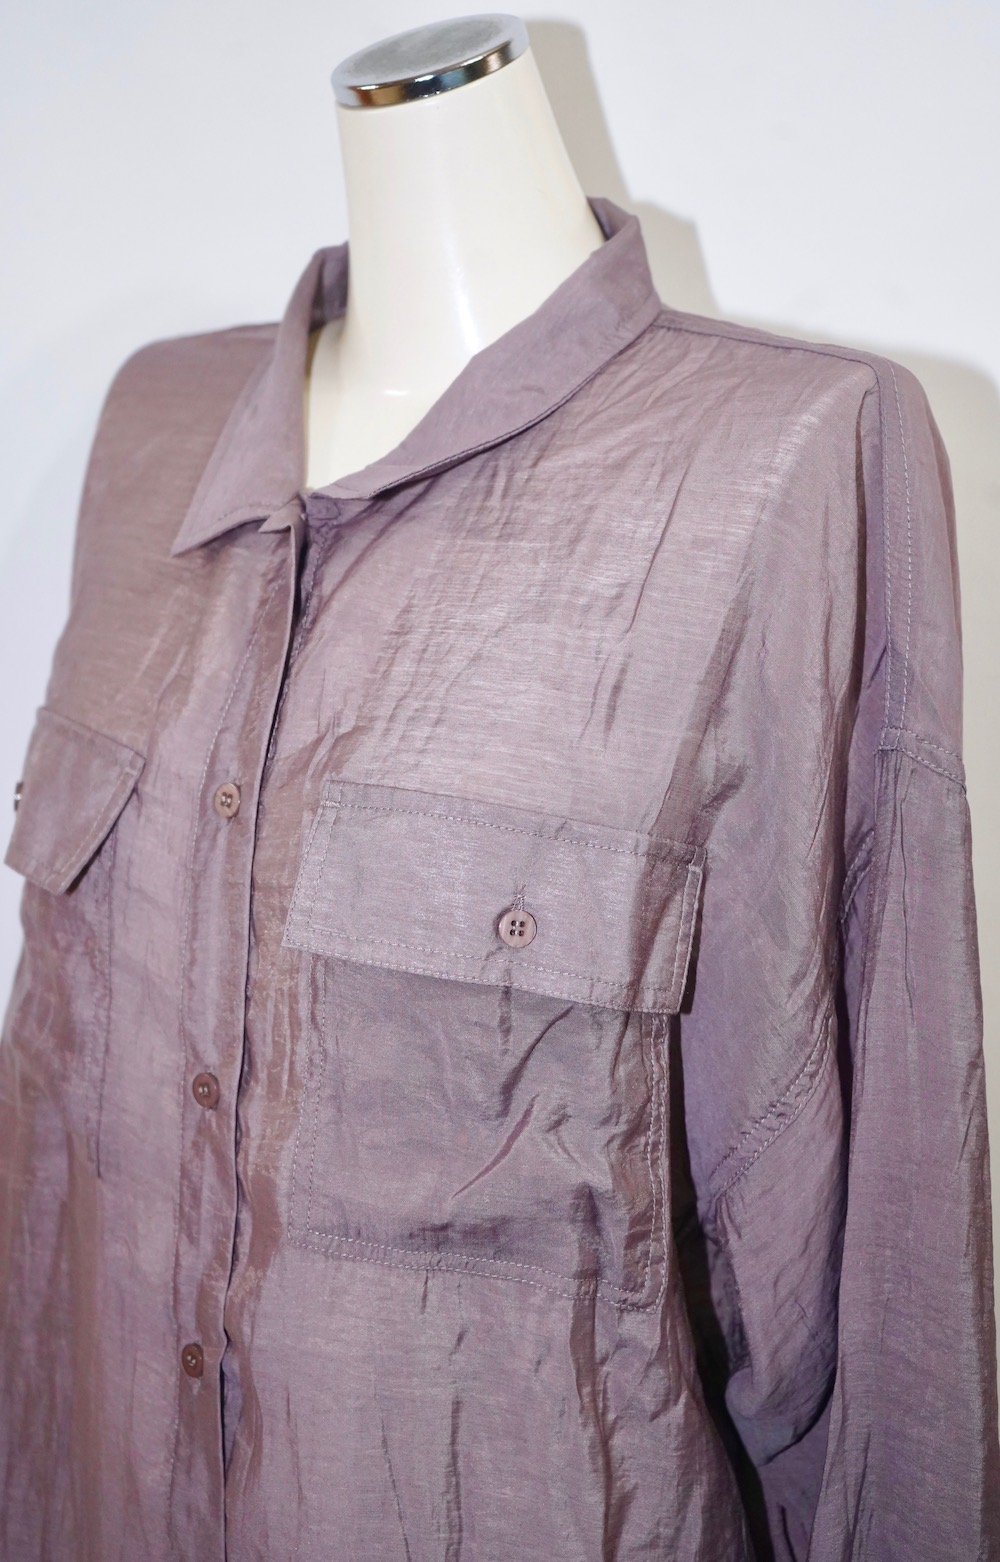 Oversized Sheer CPO Shirts (dusty lavender)